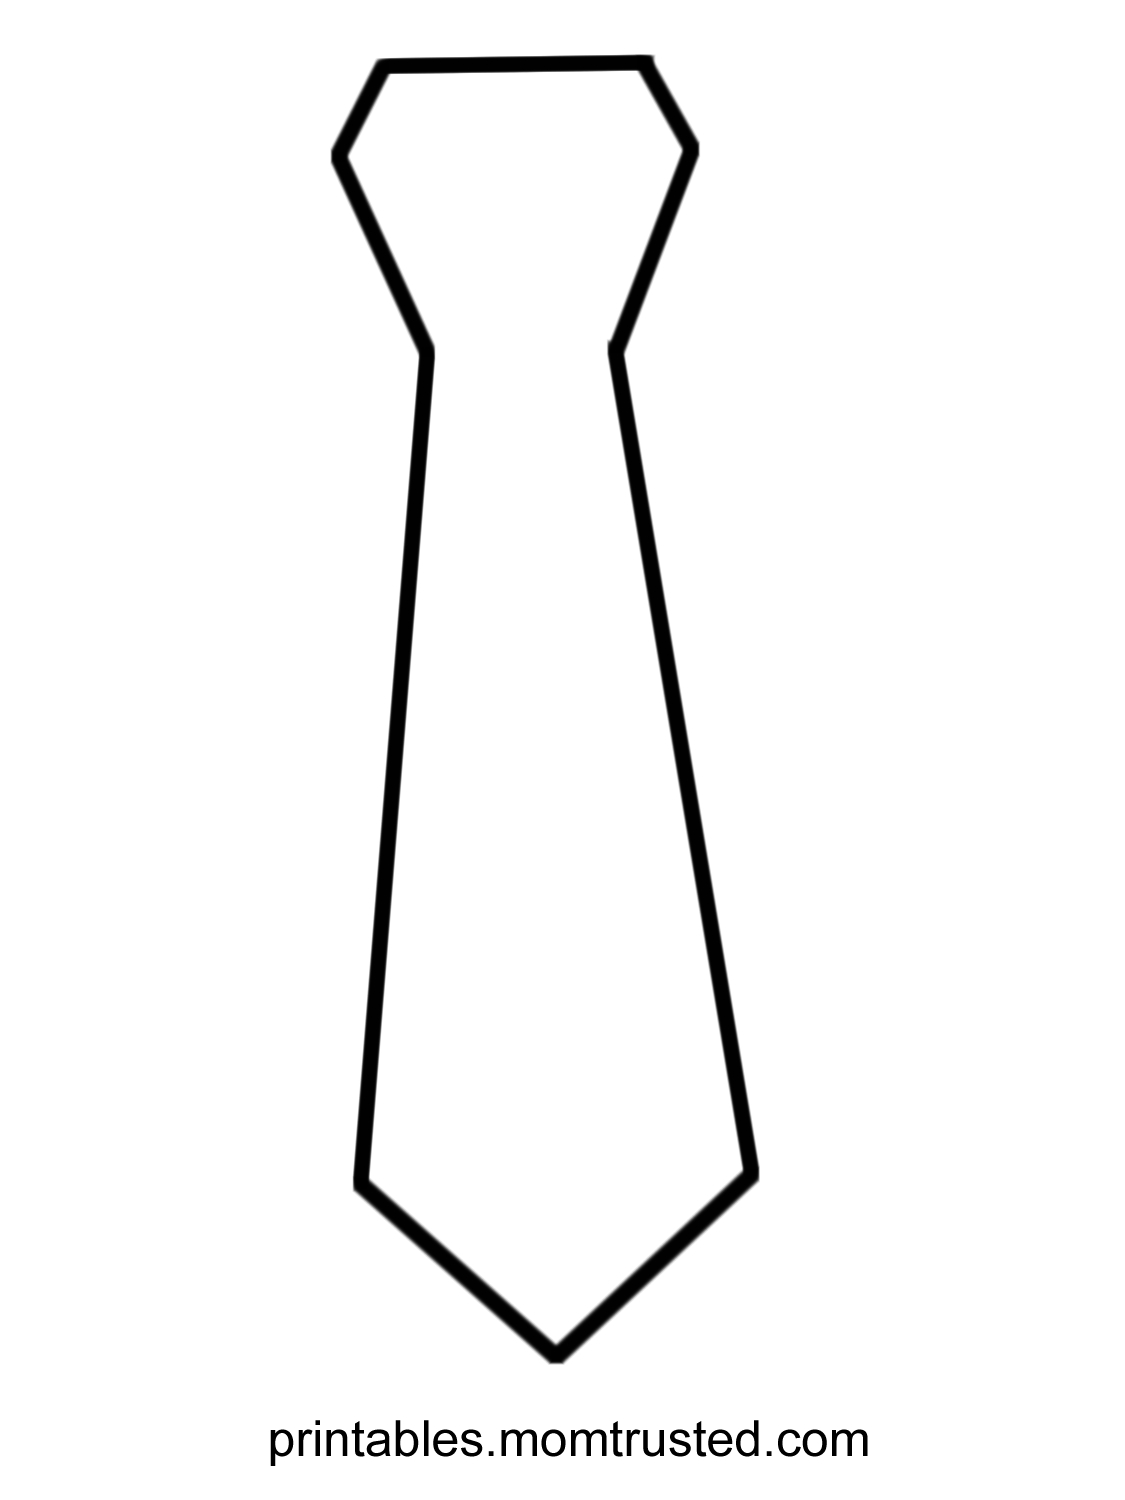 1125x1500 Drawing Of A Tie Drawn Bow Tie